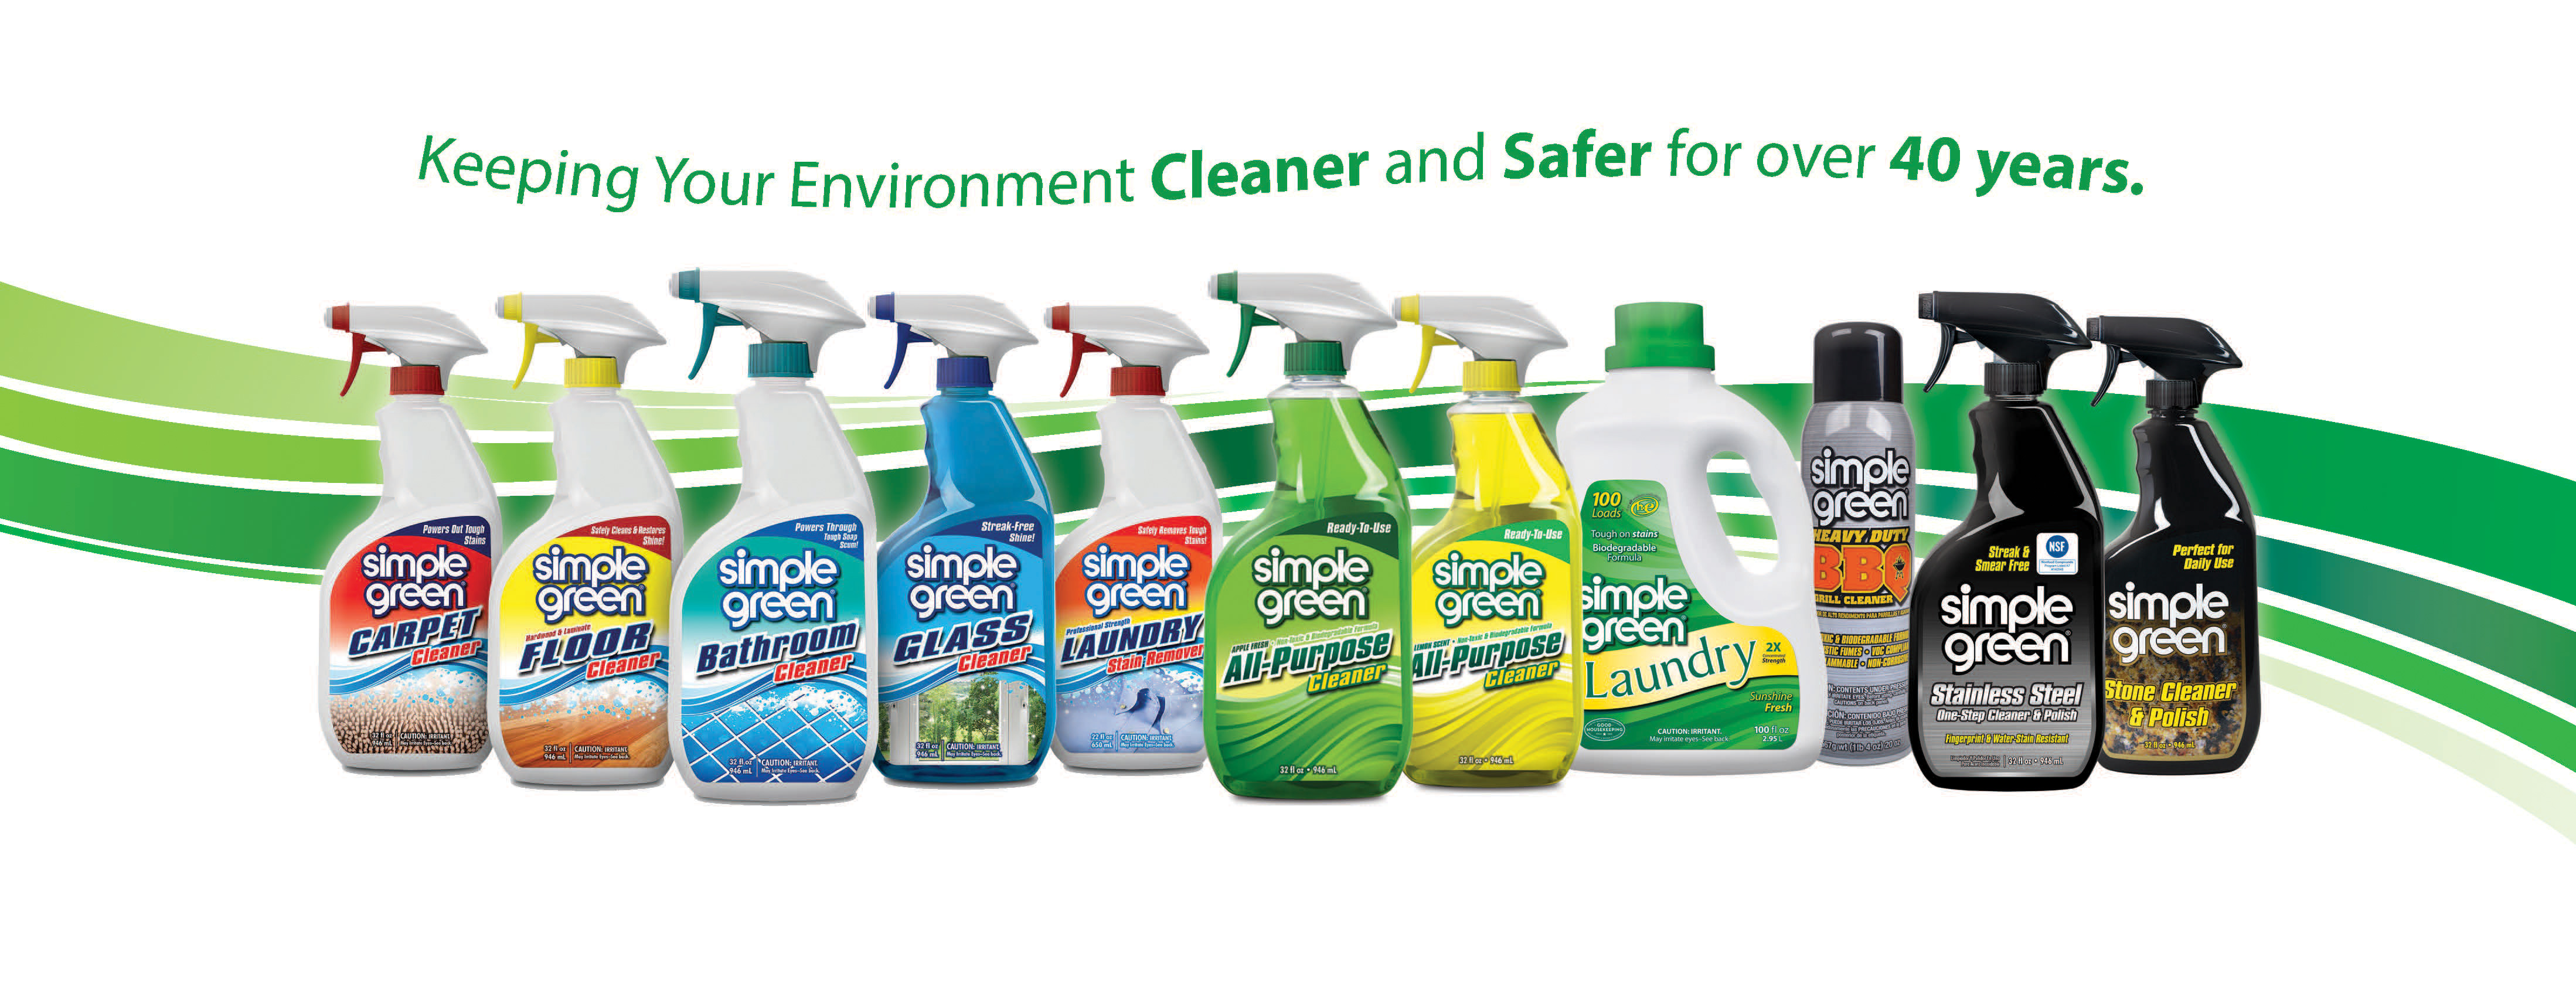 Simple Green Ready-To-Use Cleaners